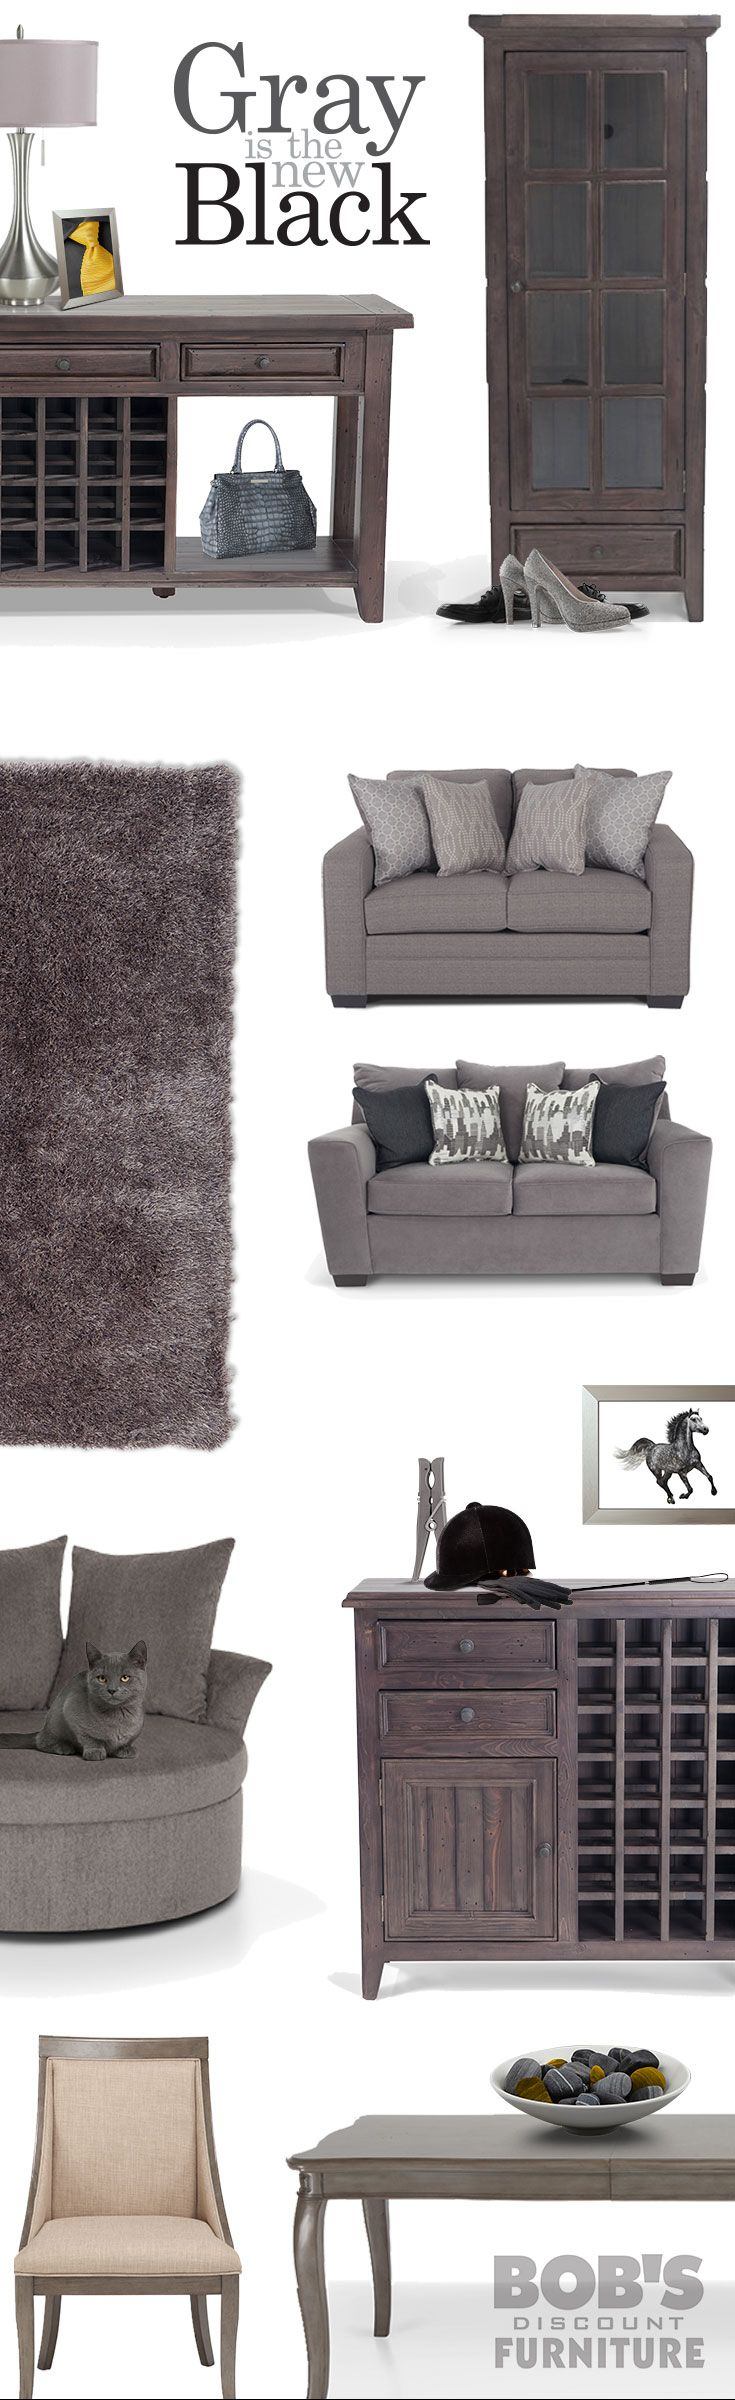 24 best Gray is the New Black images on Pinterest | Living room sets ...